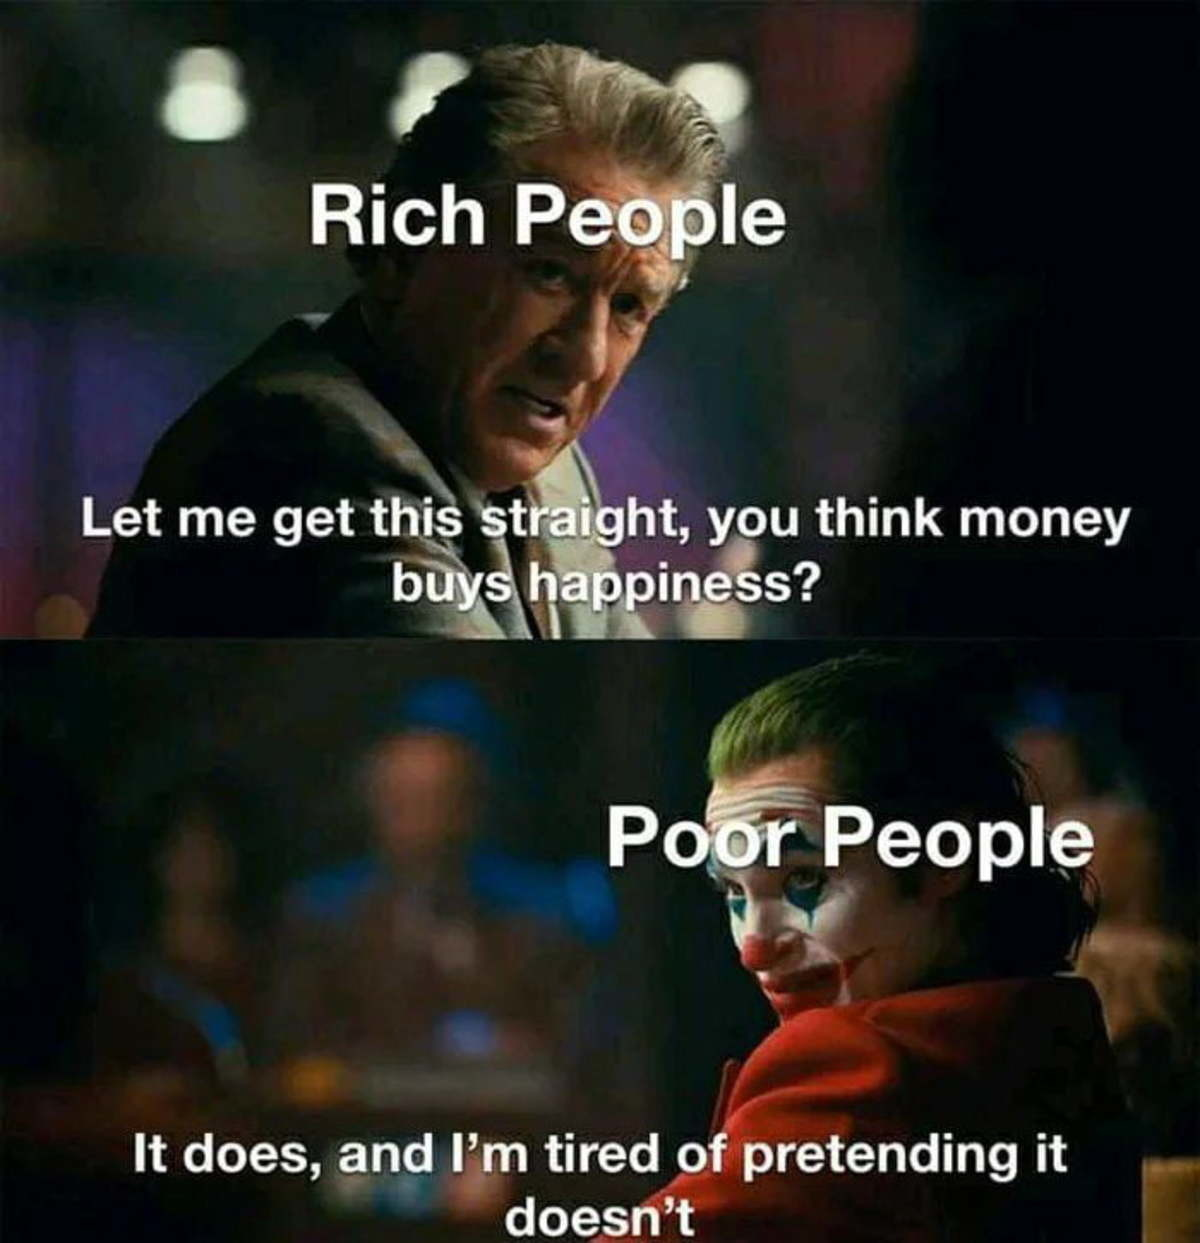 retaliatory Gerbil. .. Freedom buys happiness. Workers are ruled by rich blokes. Rich people are dumb as , seeing as they invite other rich people to run their lives with their excess